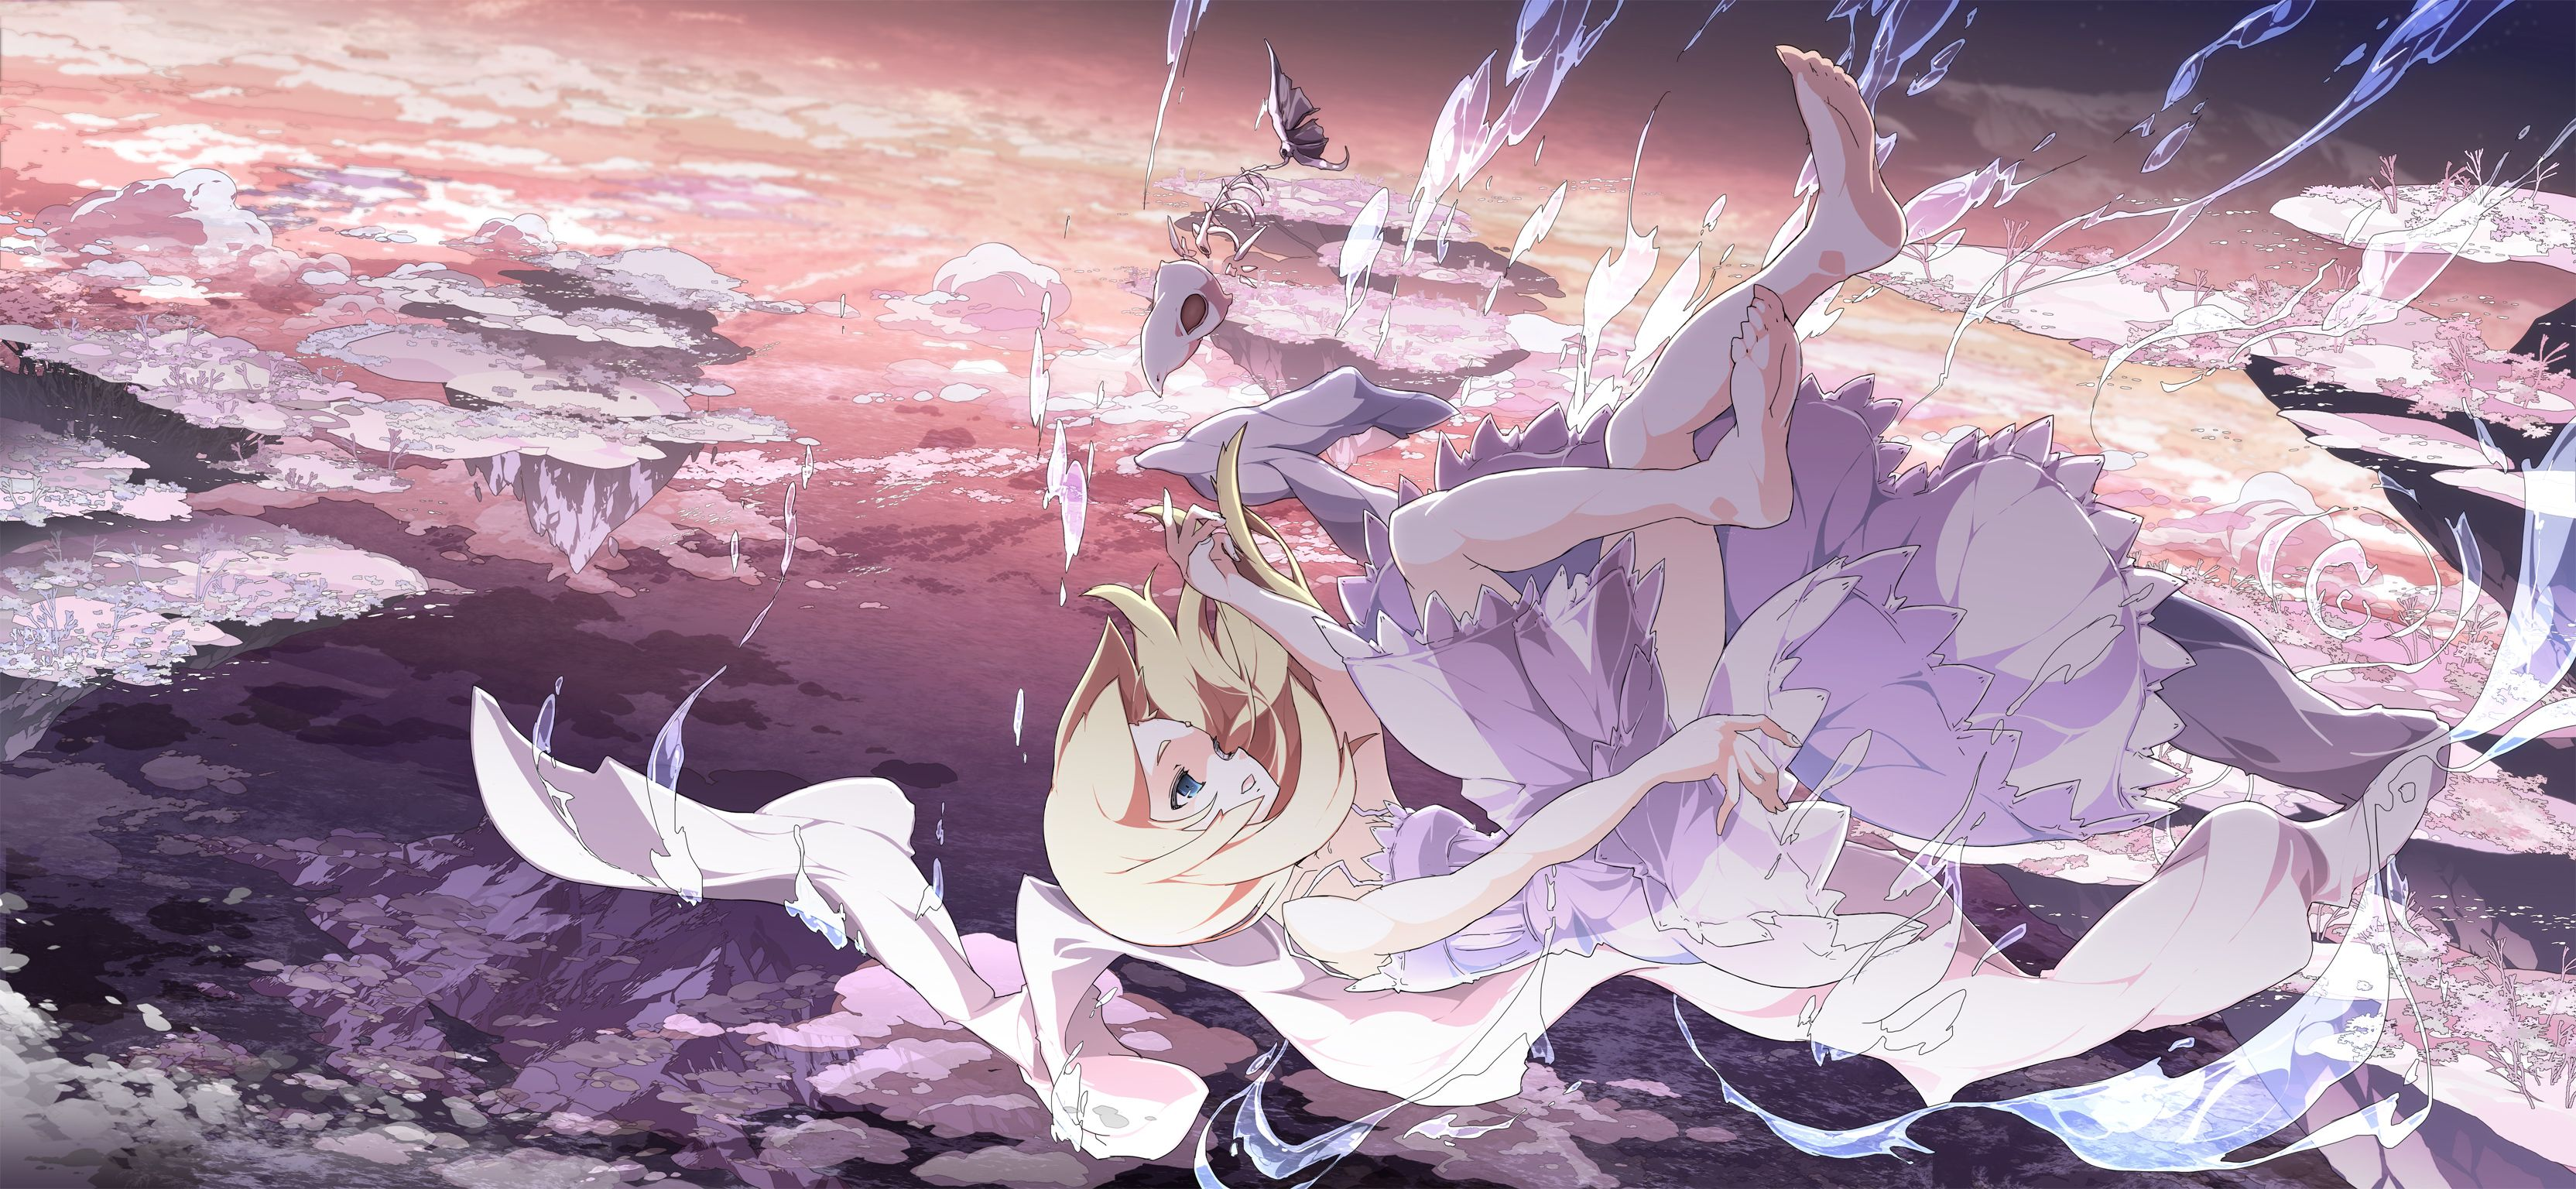 Anime Wallpaper 2020 Sky anime Anime wallpaper Cool anime 3328x1536